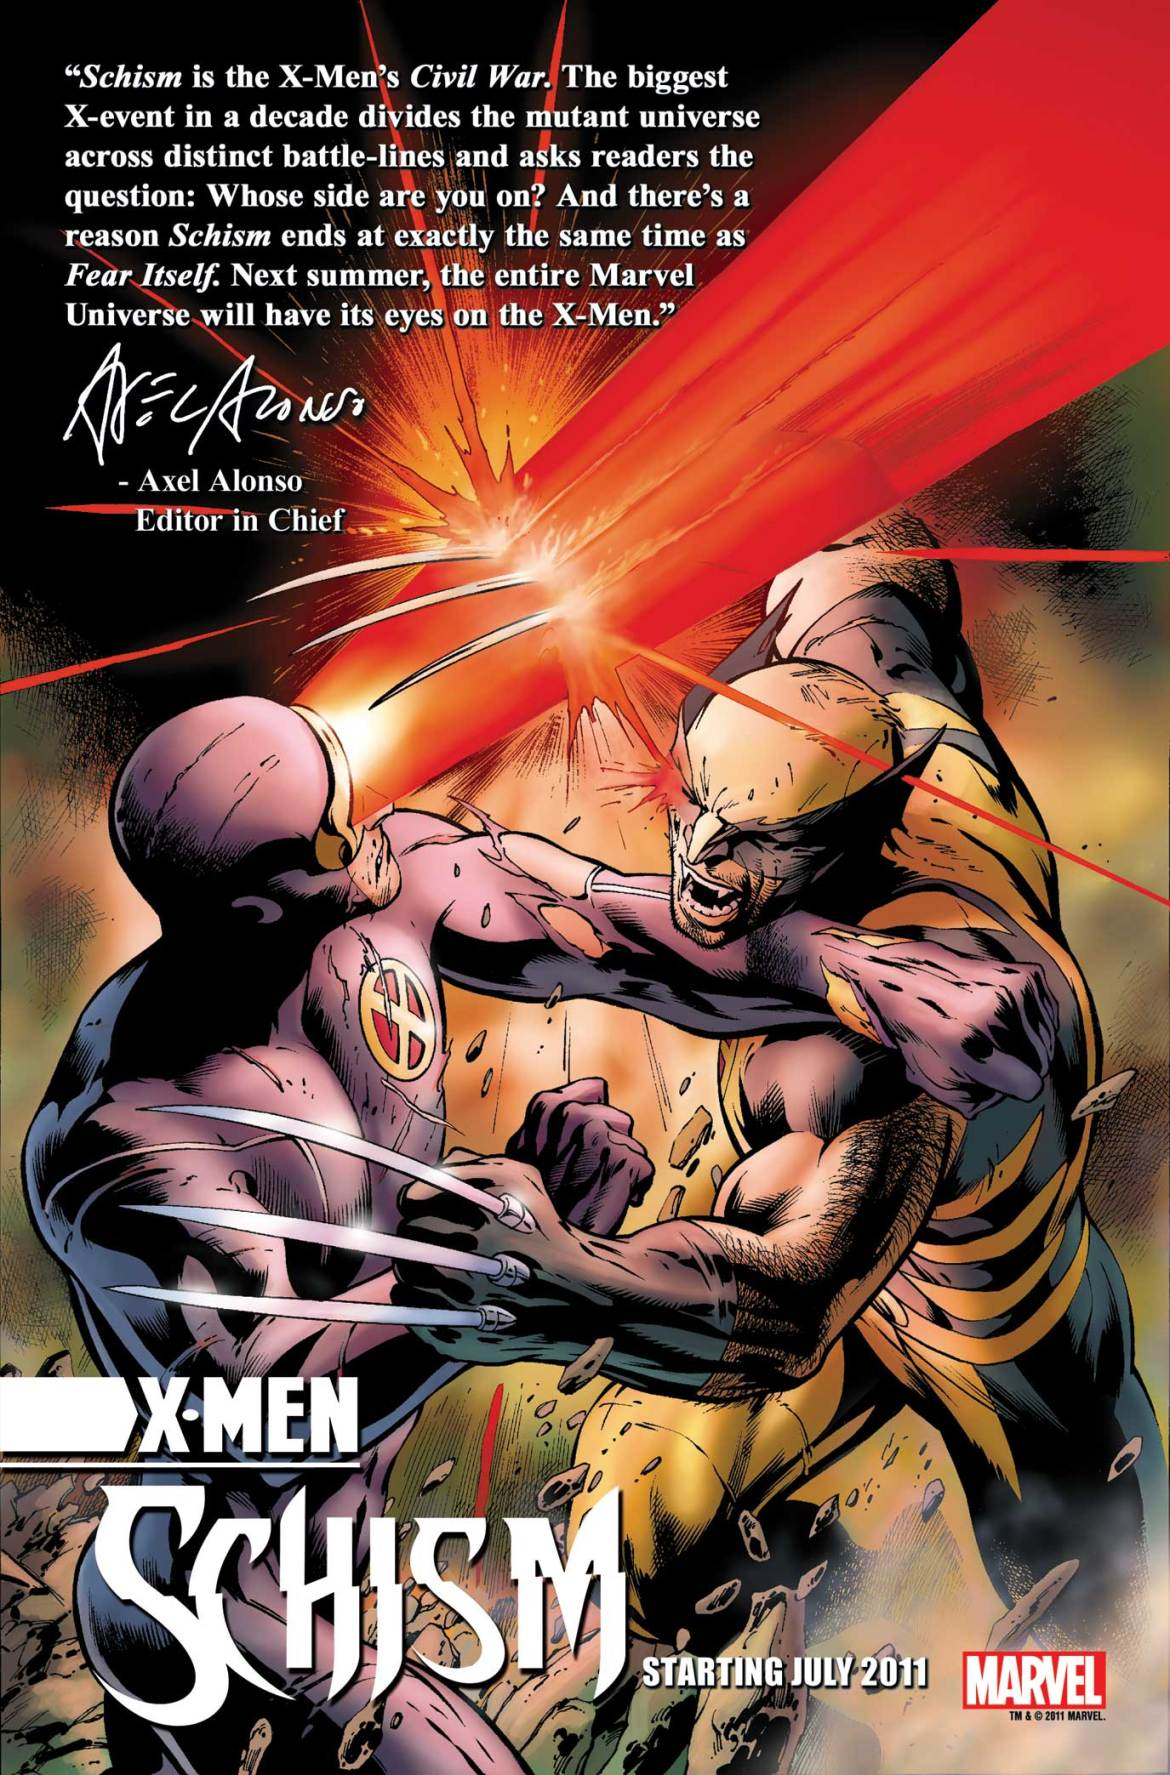 XMEN_SCHISM_Teaser X-MEN: SCHISM erupts into civil war, which can't be good